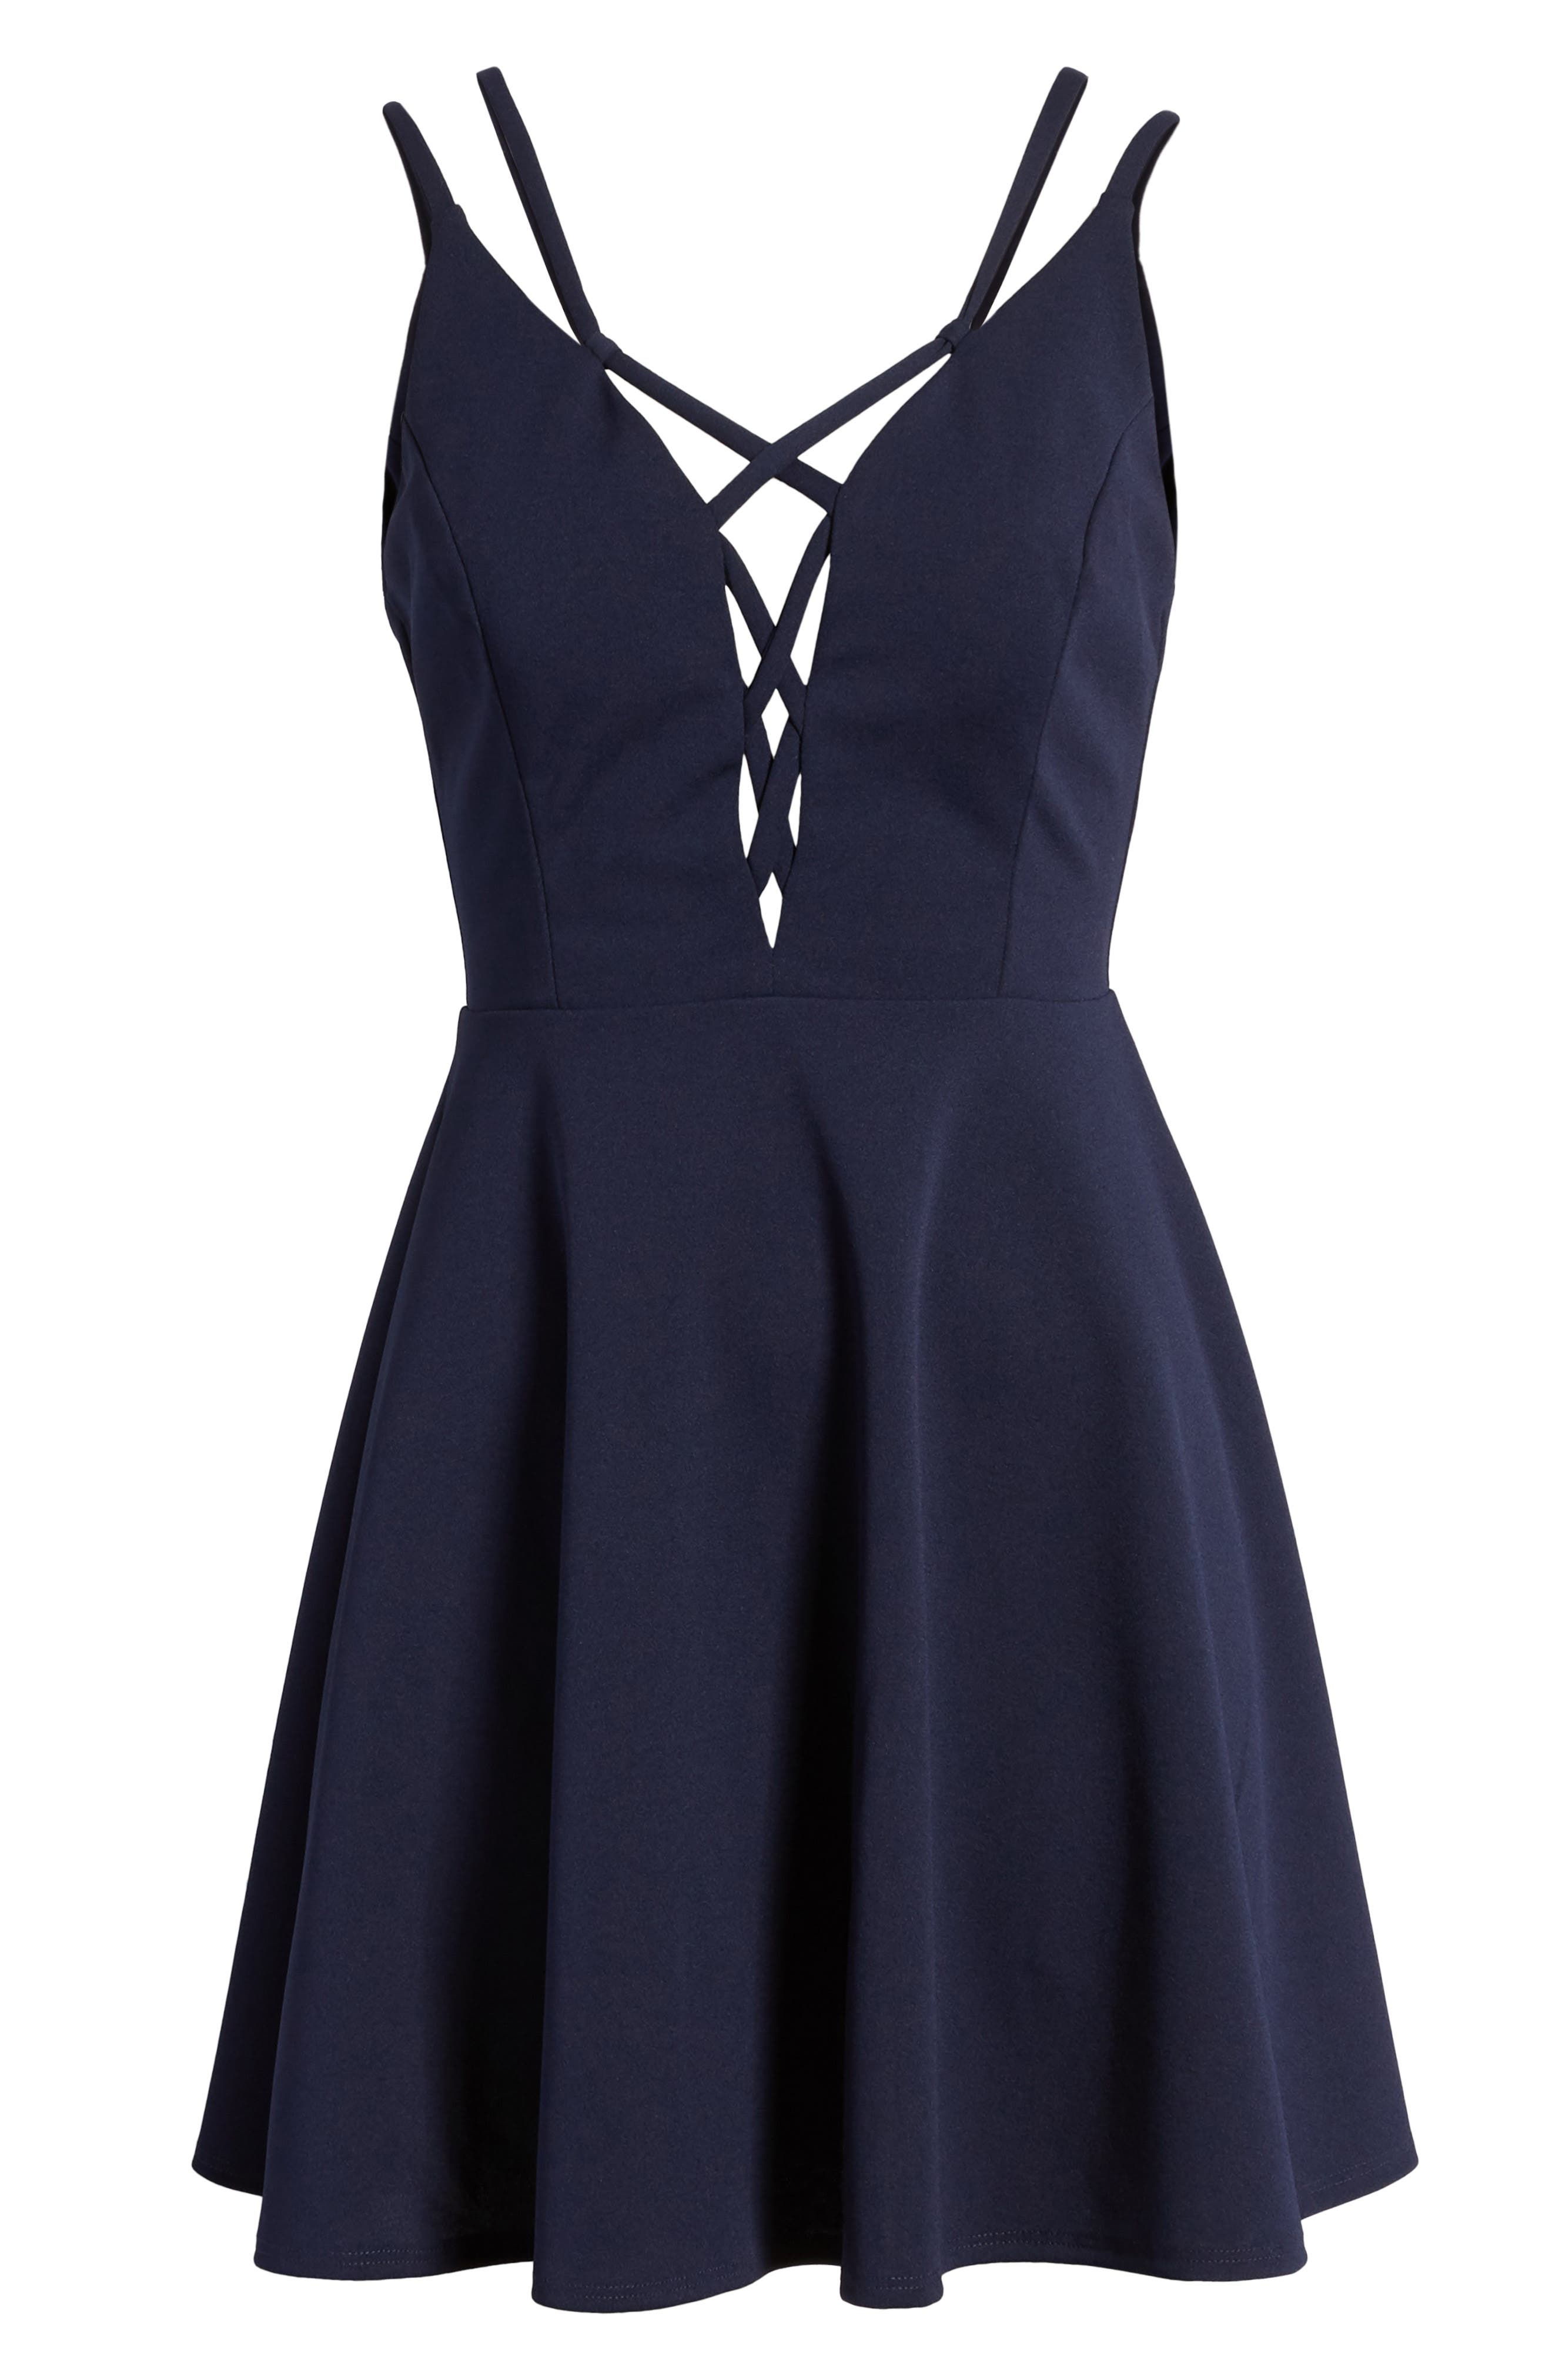 Lace-Up Skater Dress,                             Alternate thumbnail 7, color,                             Midnight